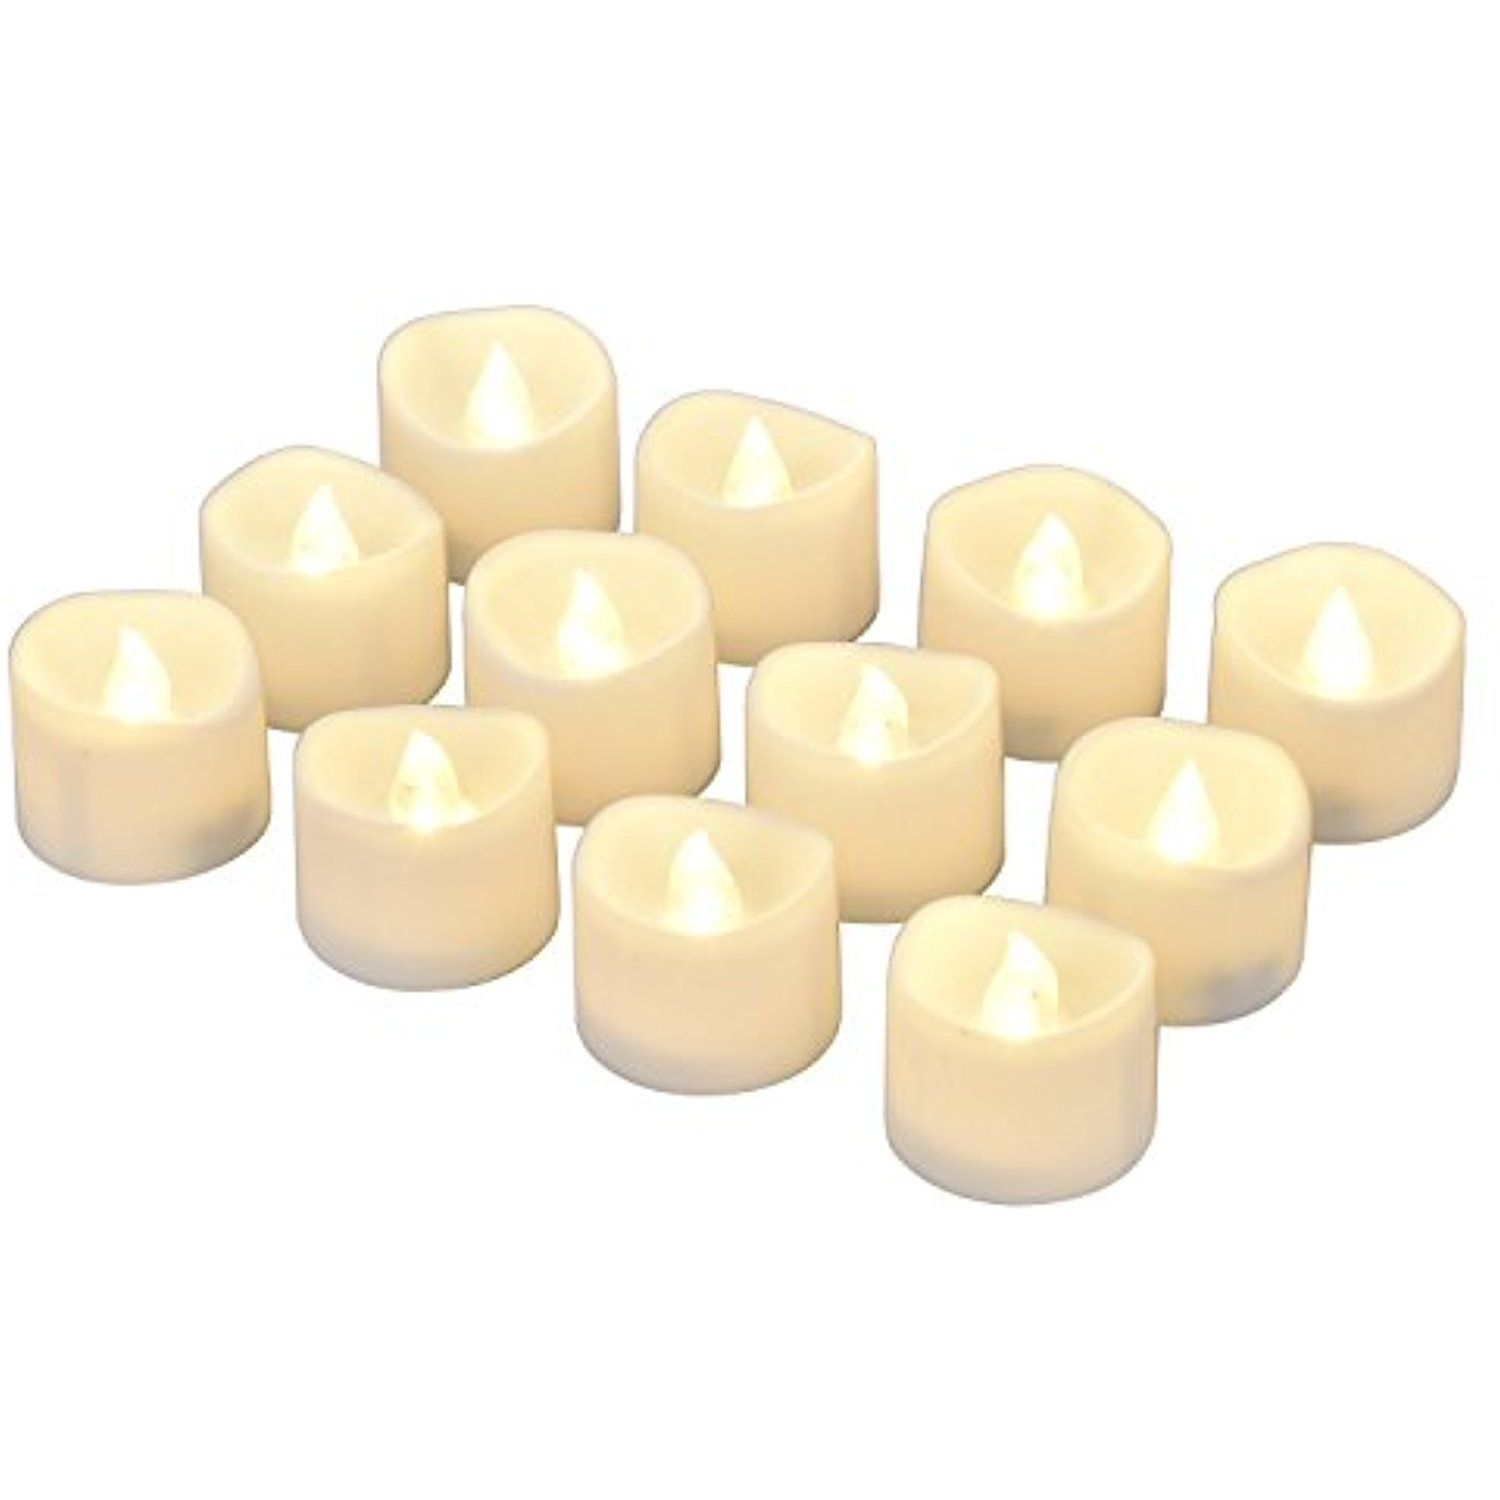 flameless candles,wewalab great led tea light candles,candle lights